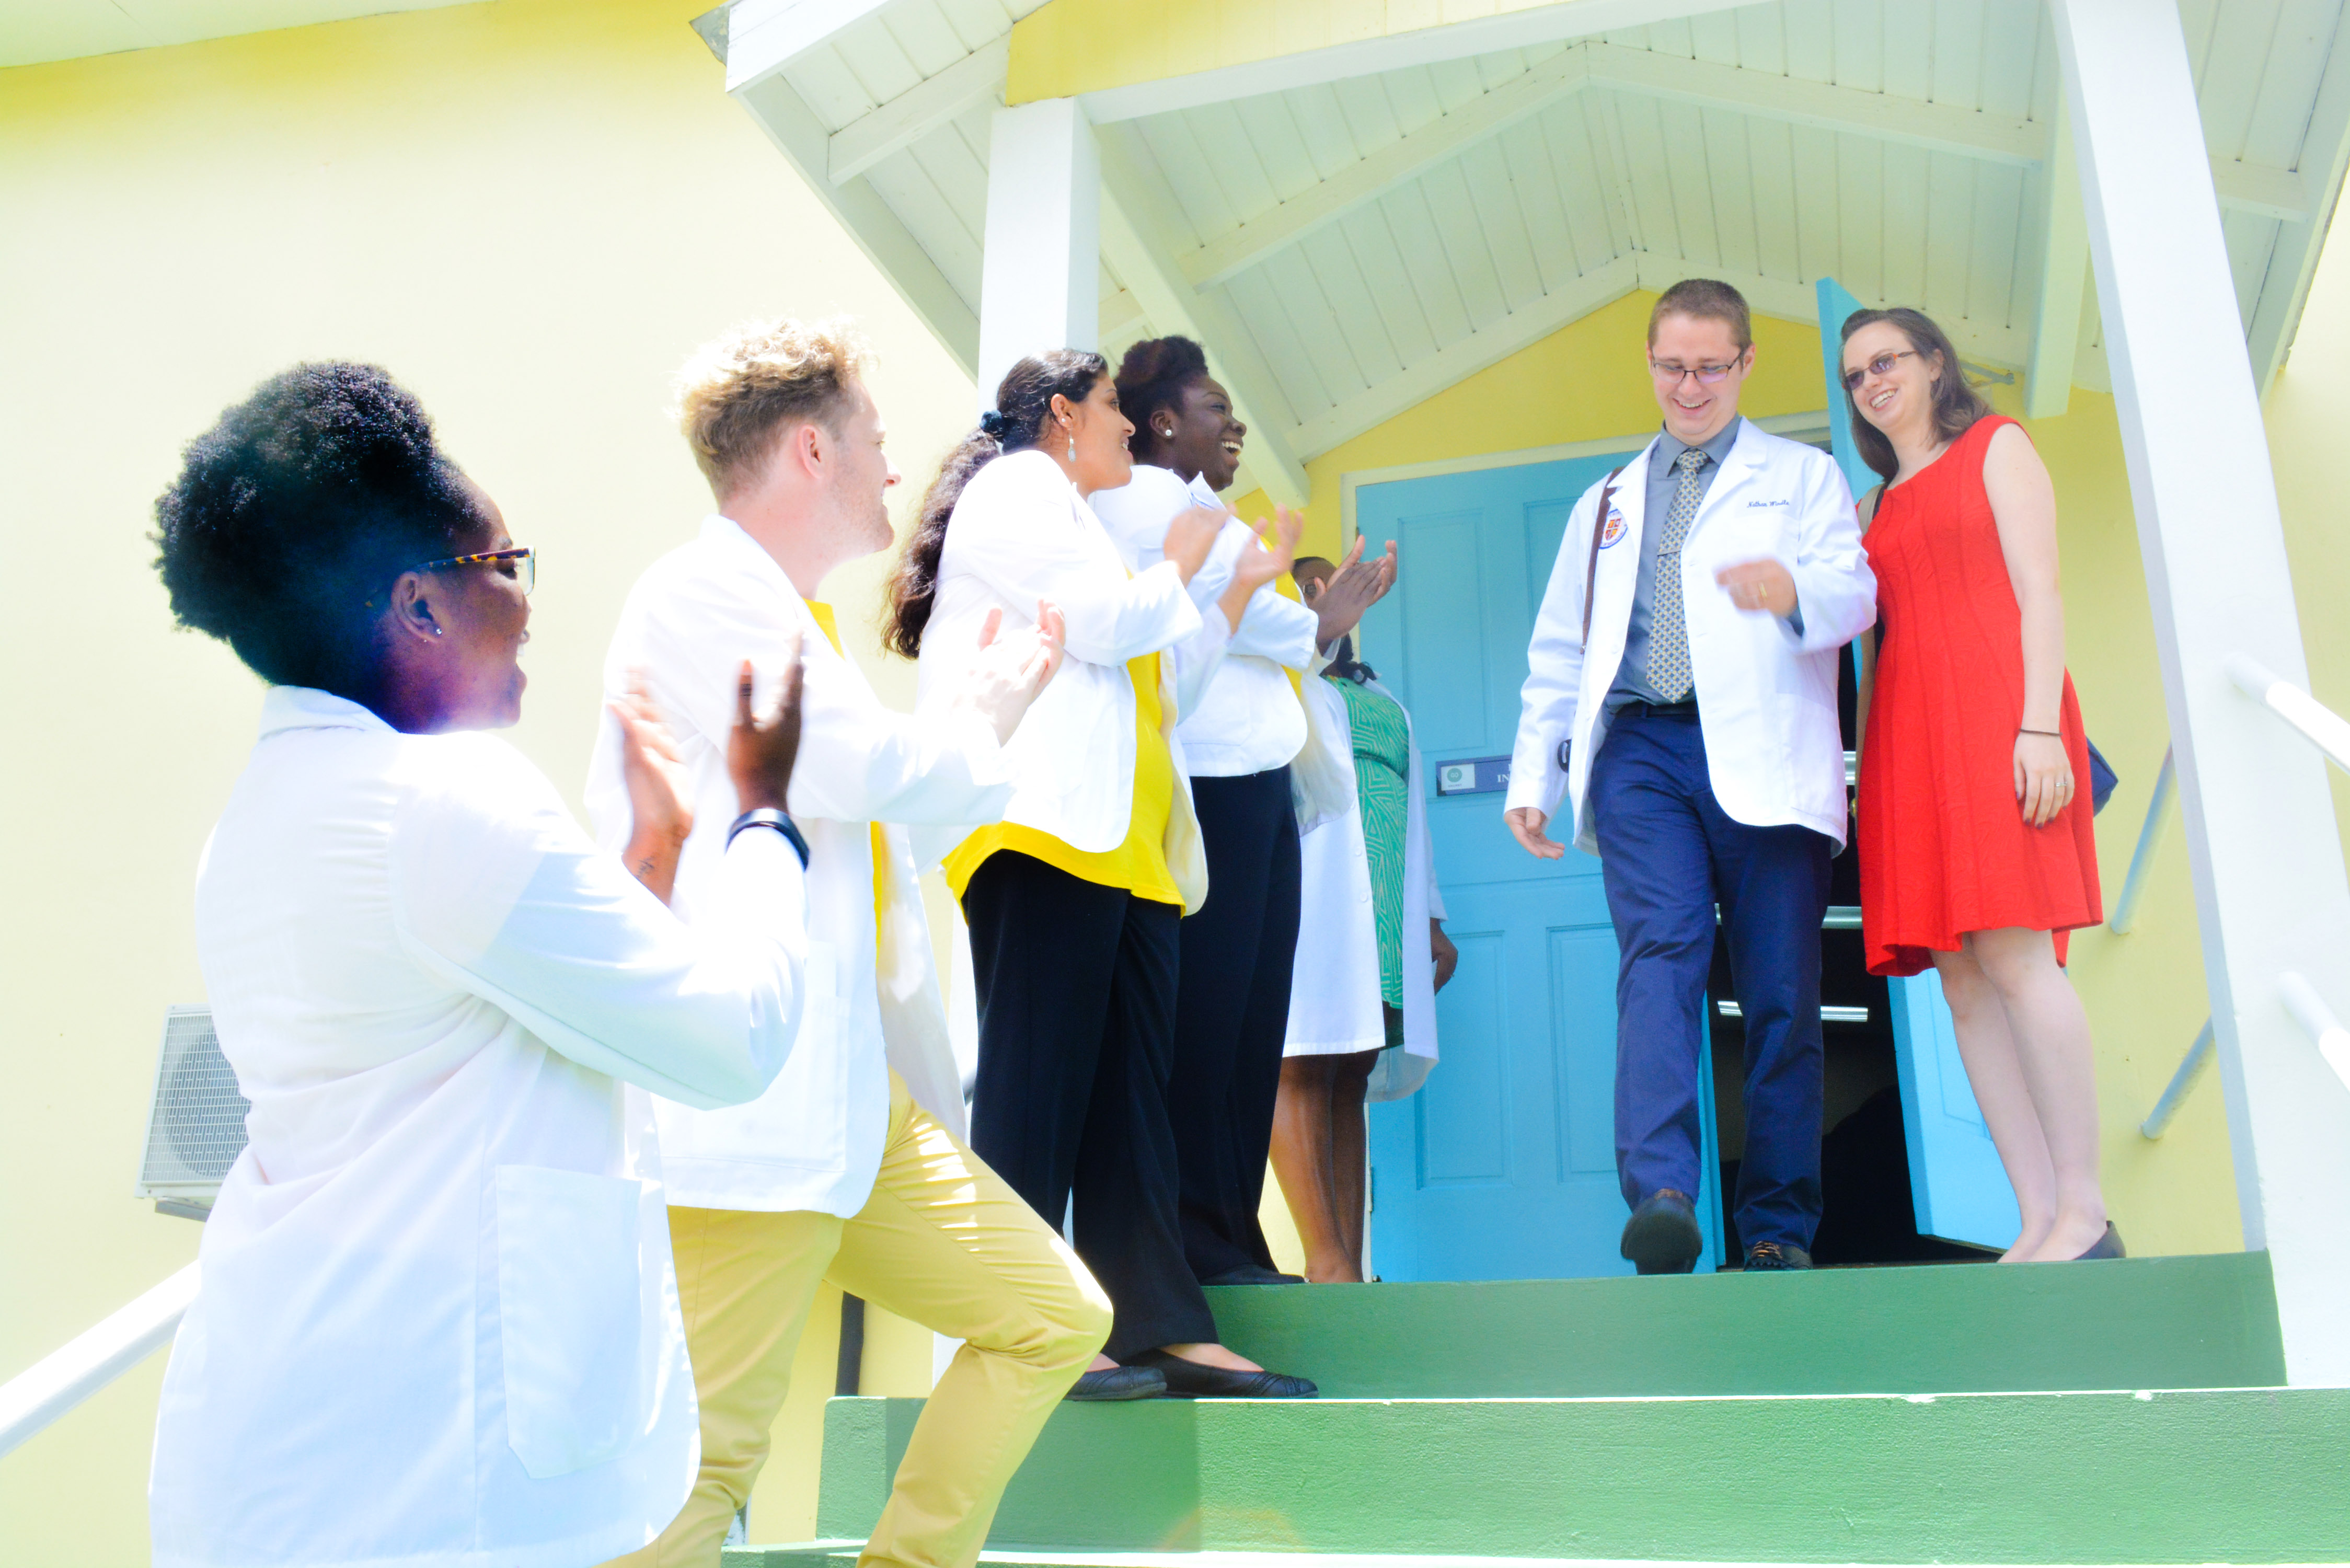 Newly minted white coat students at Trinity School of Medicine celebrate